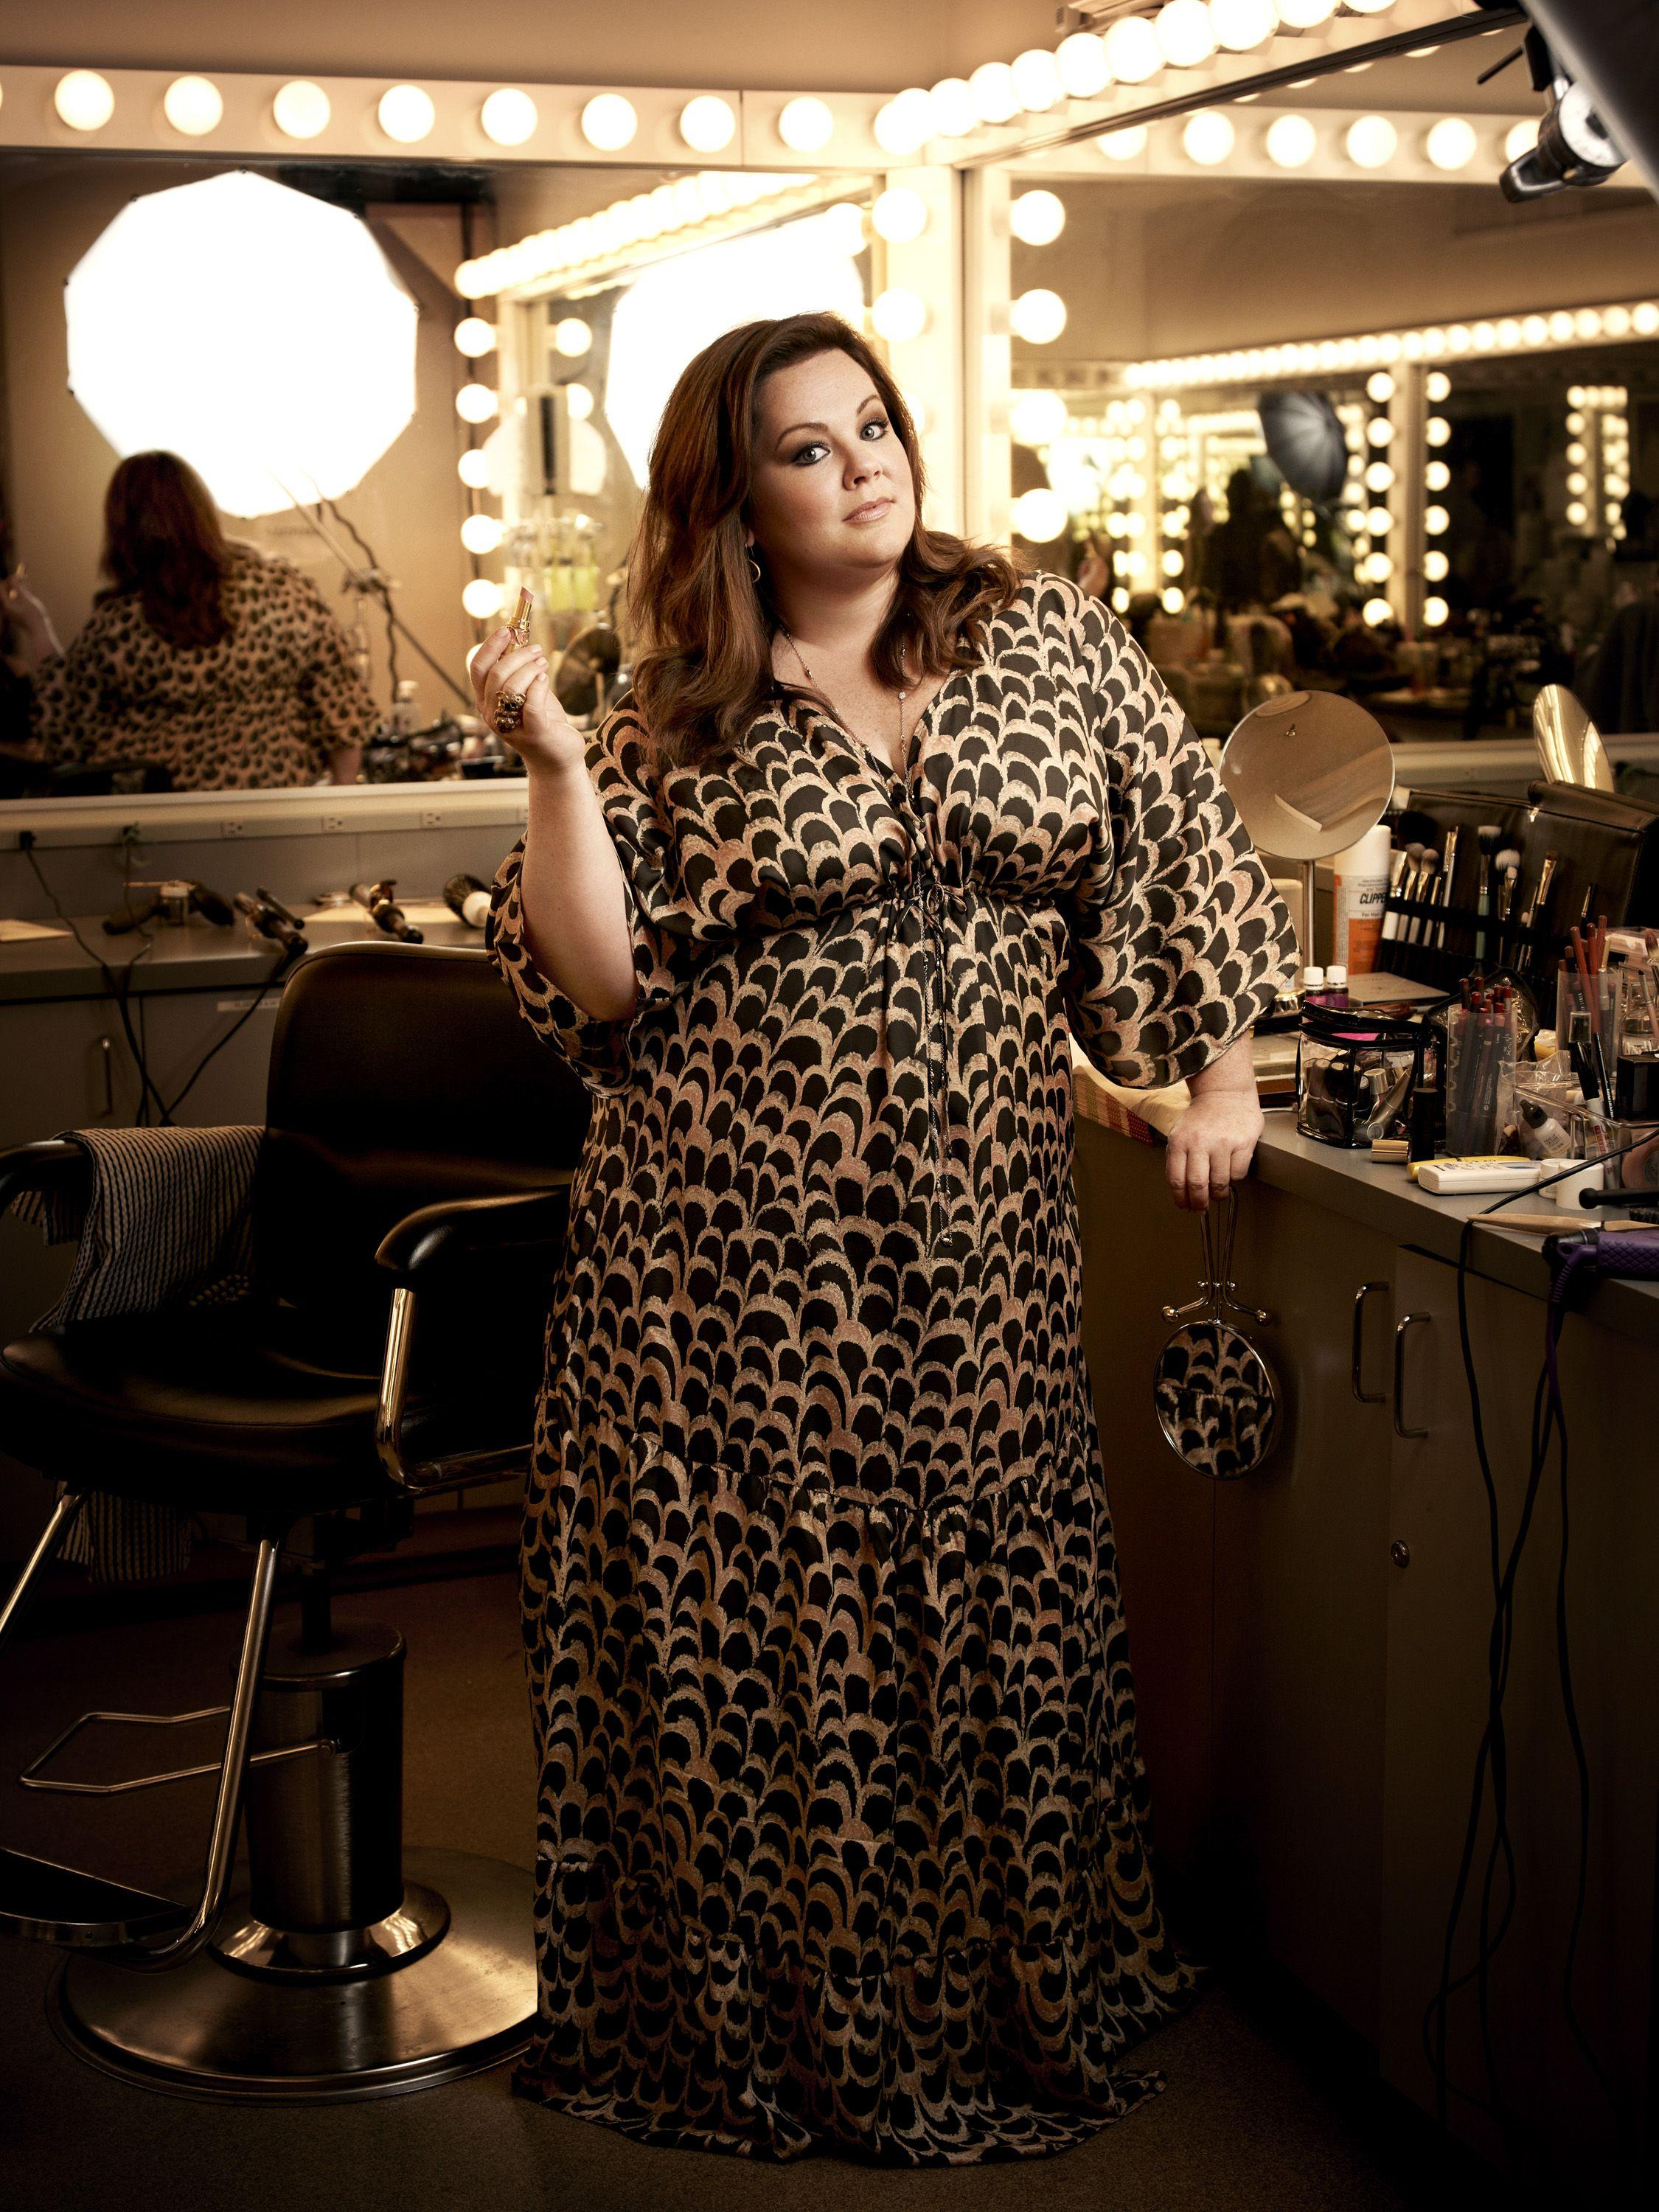 Mike & Molly | Mike & Molly | Pinterest | Melissa mccarthy and ...